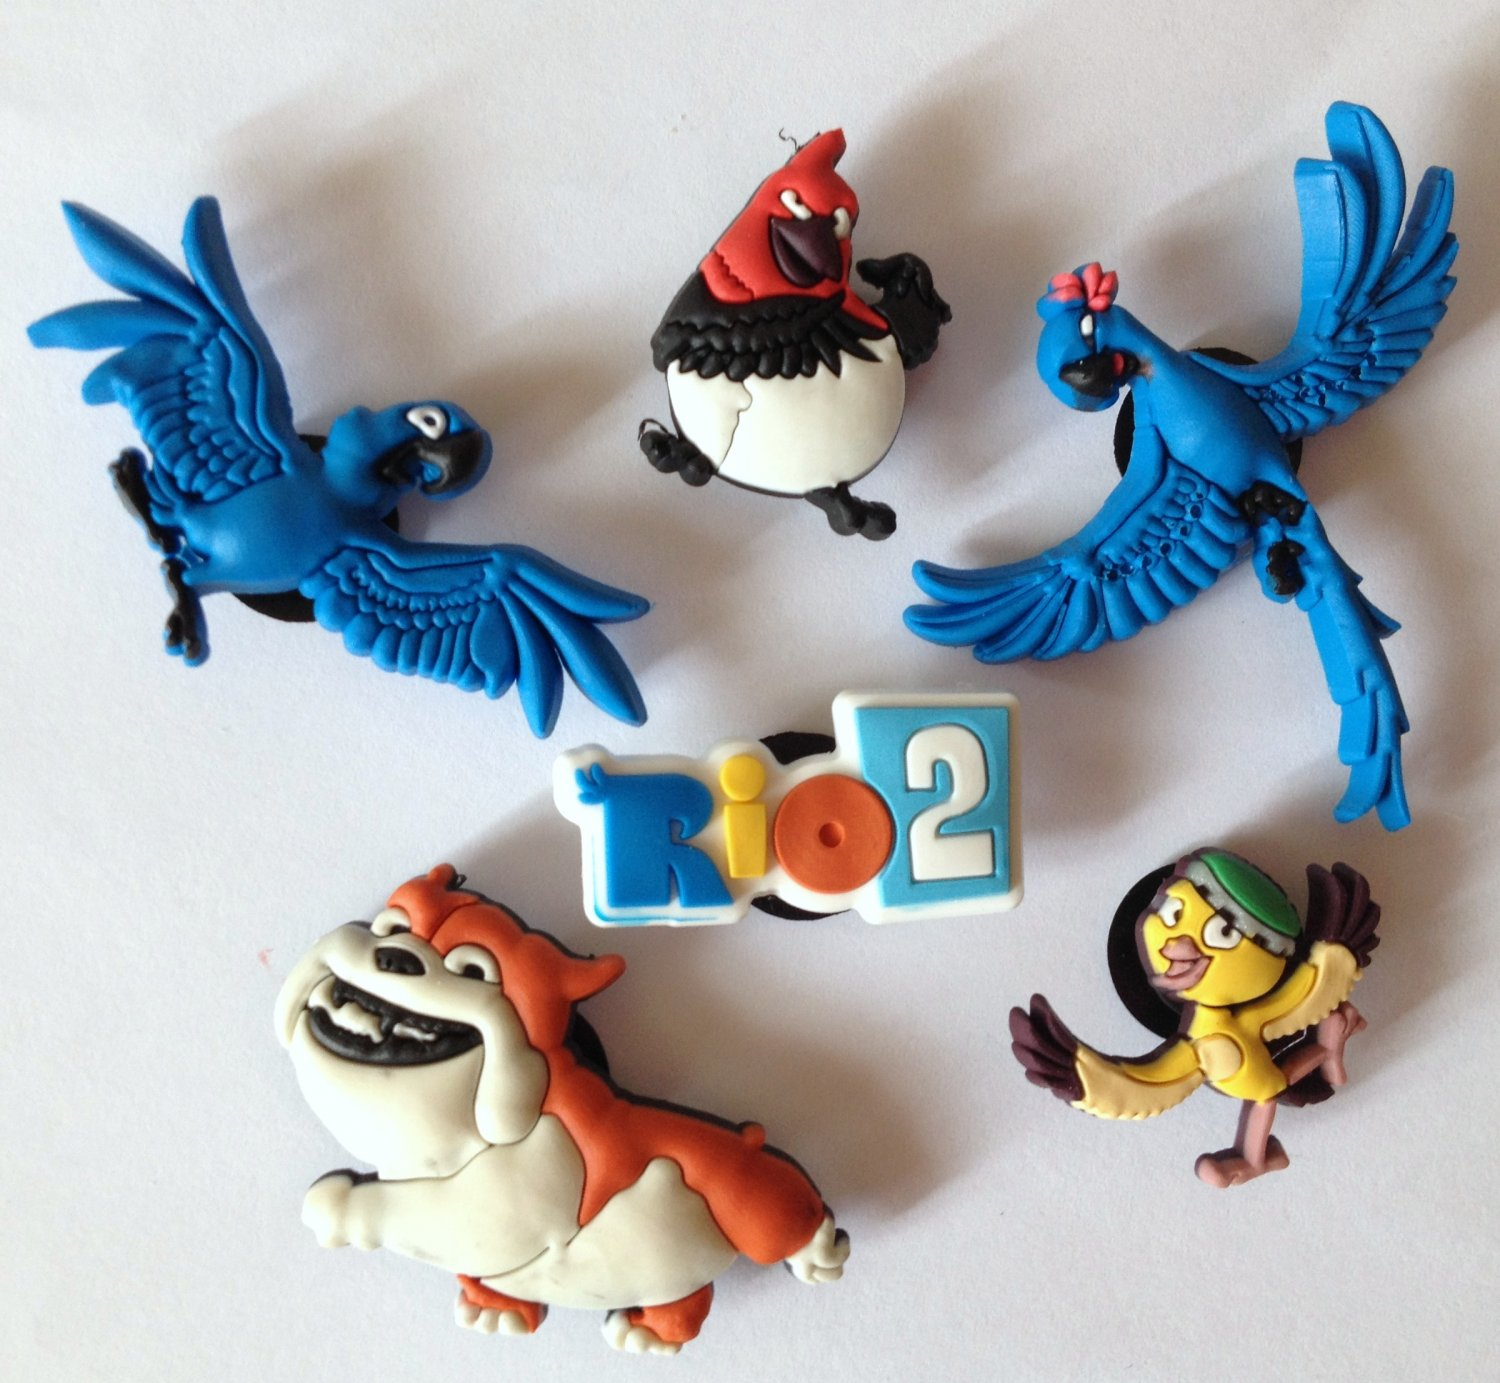 Rio 2 Movie 6pc Shoe Charms Party Favors